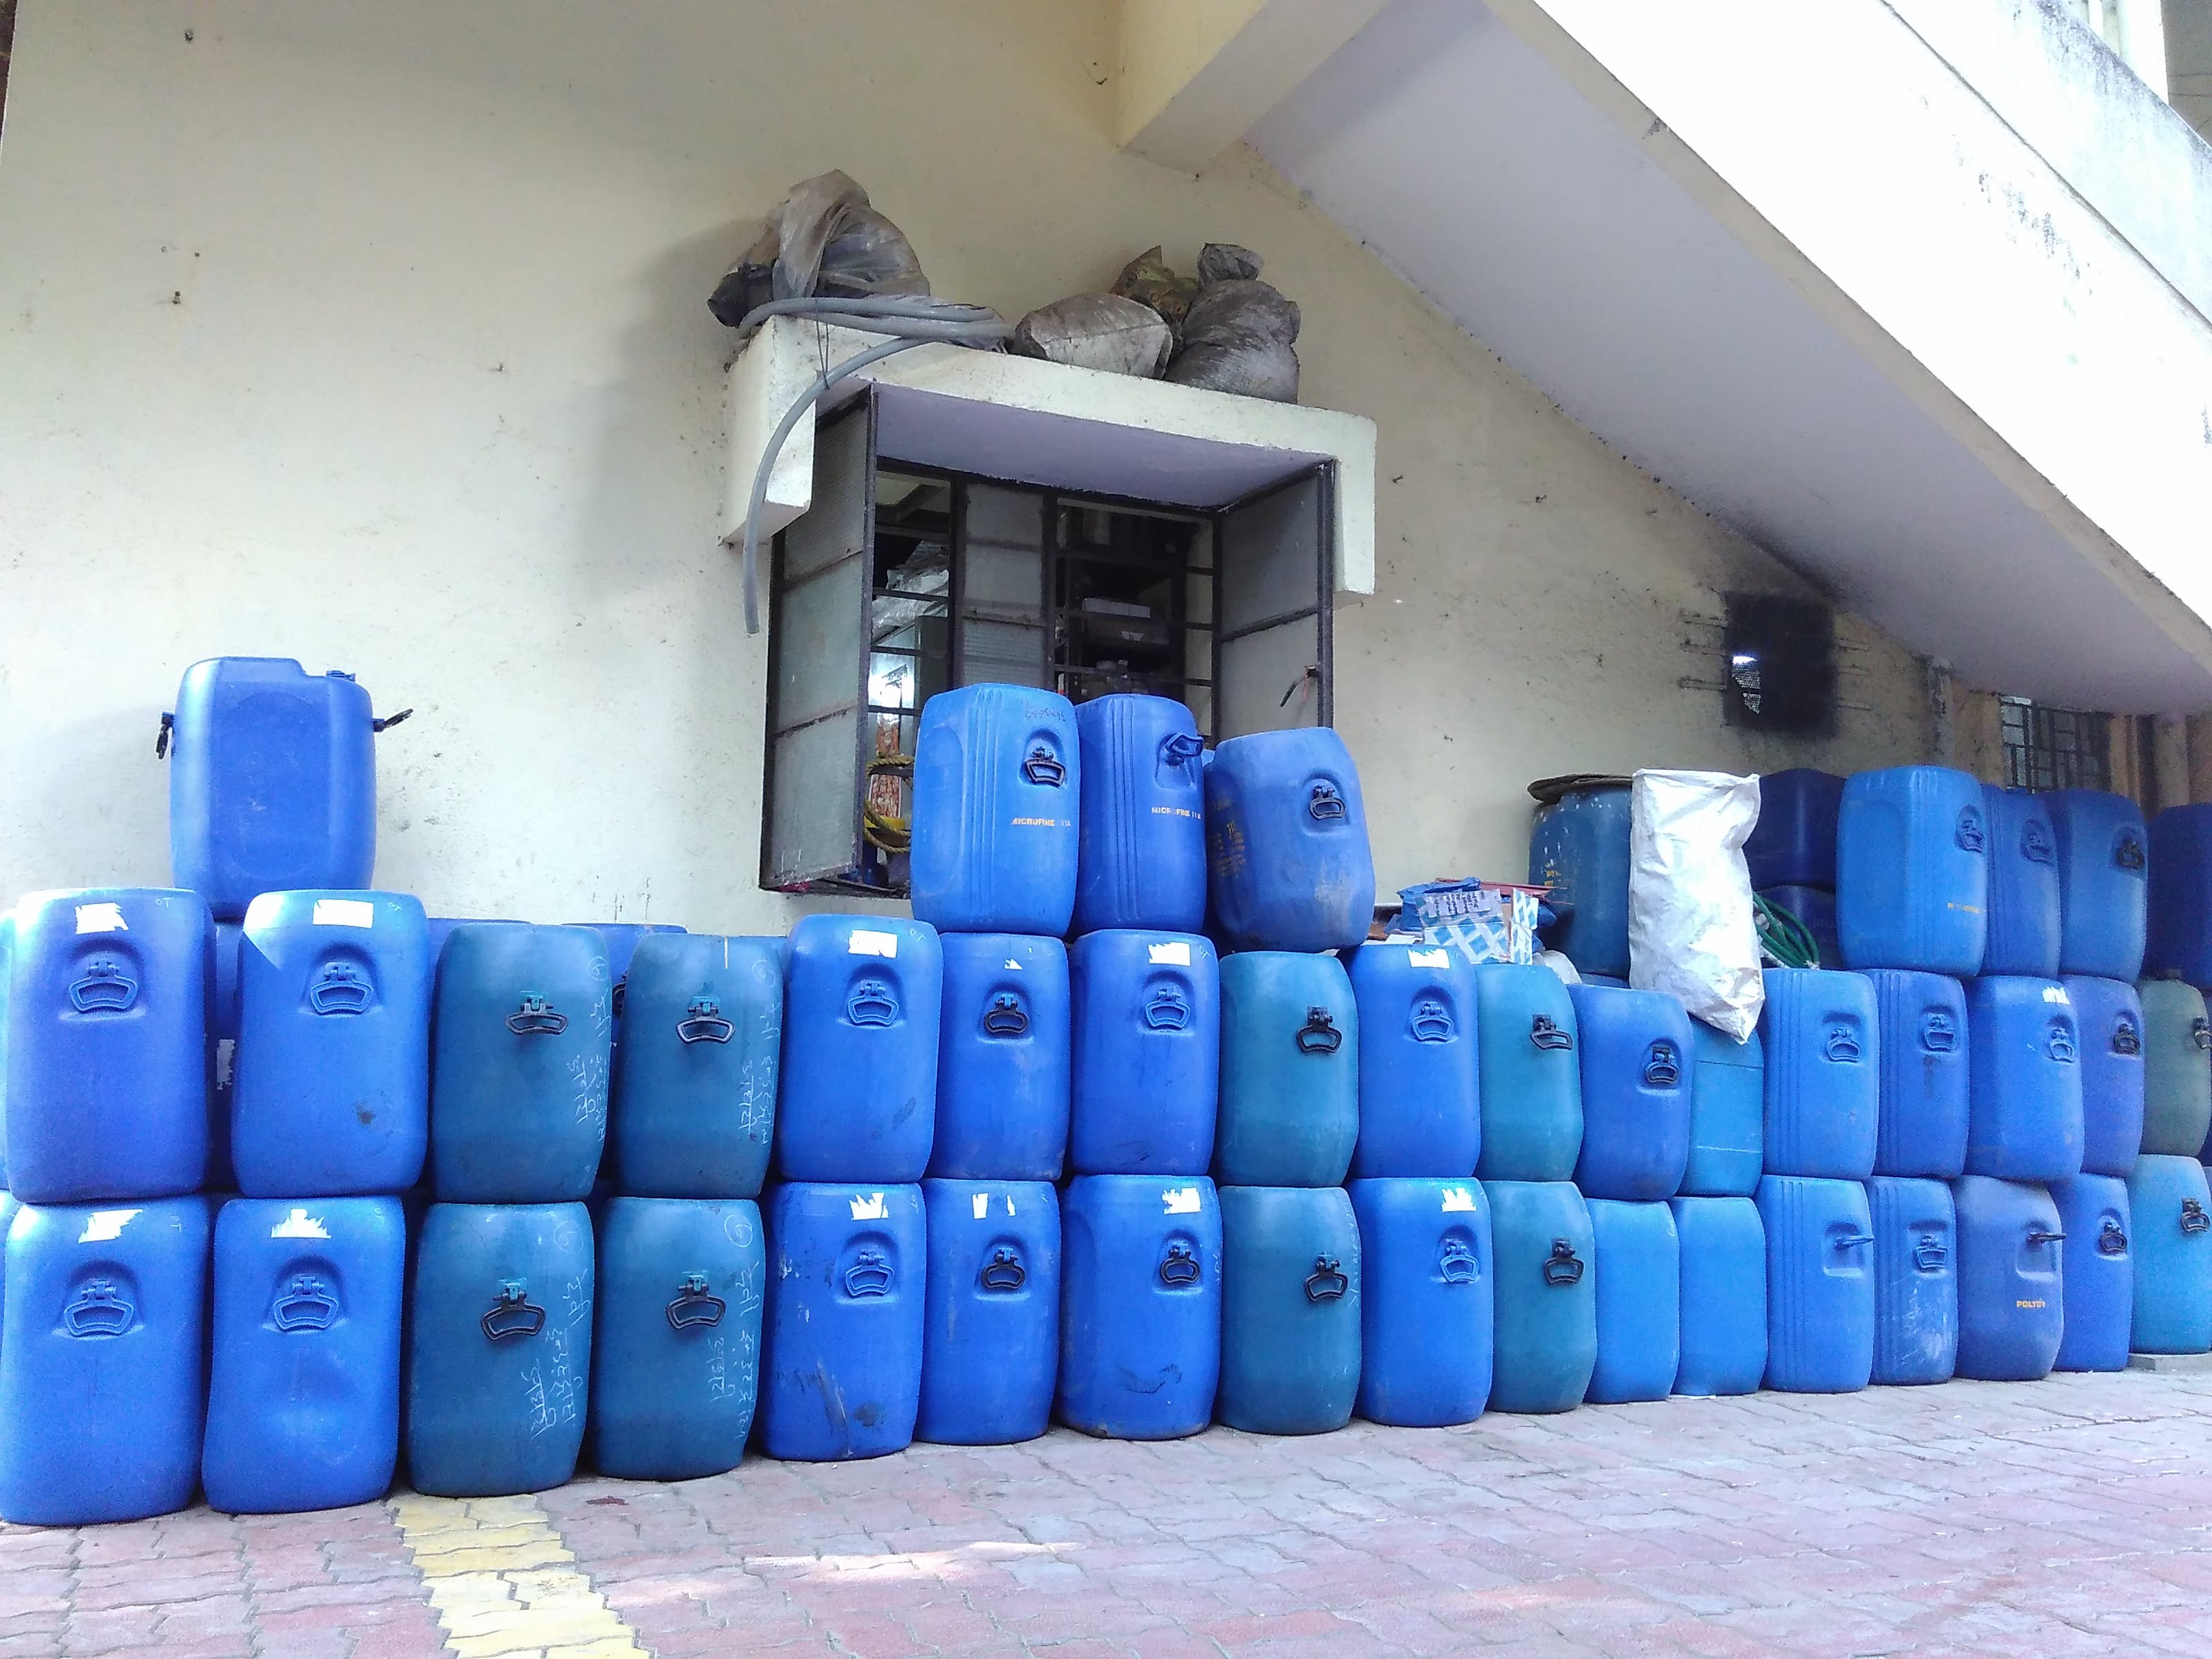 blue cans, chemical, cloth chemical